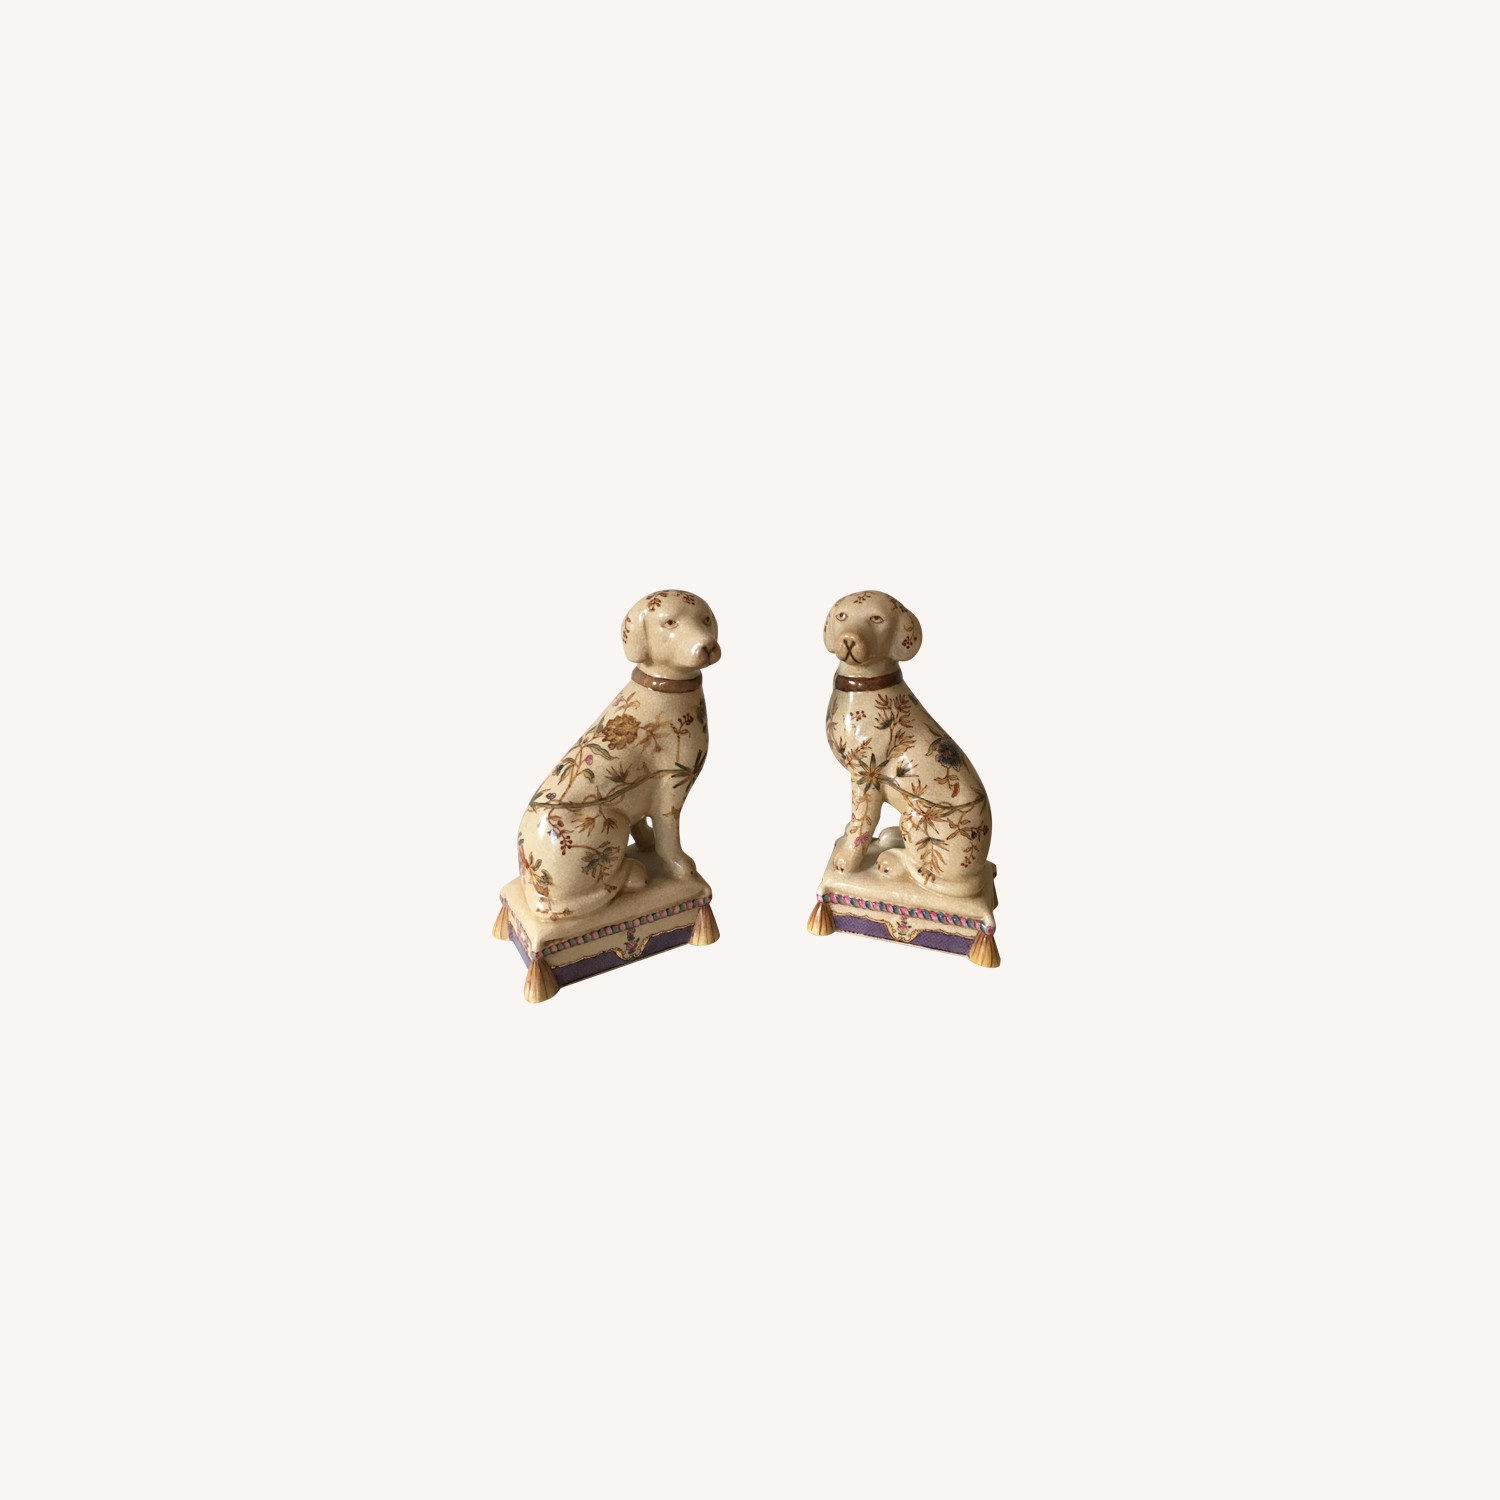 Dog Figurines/Bookends